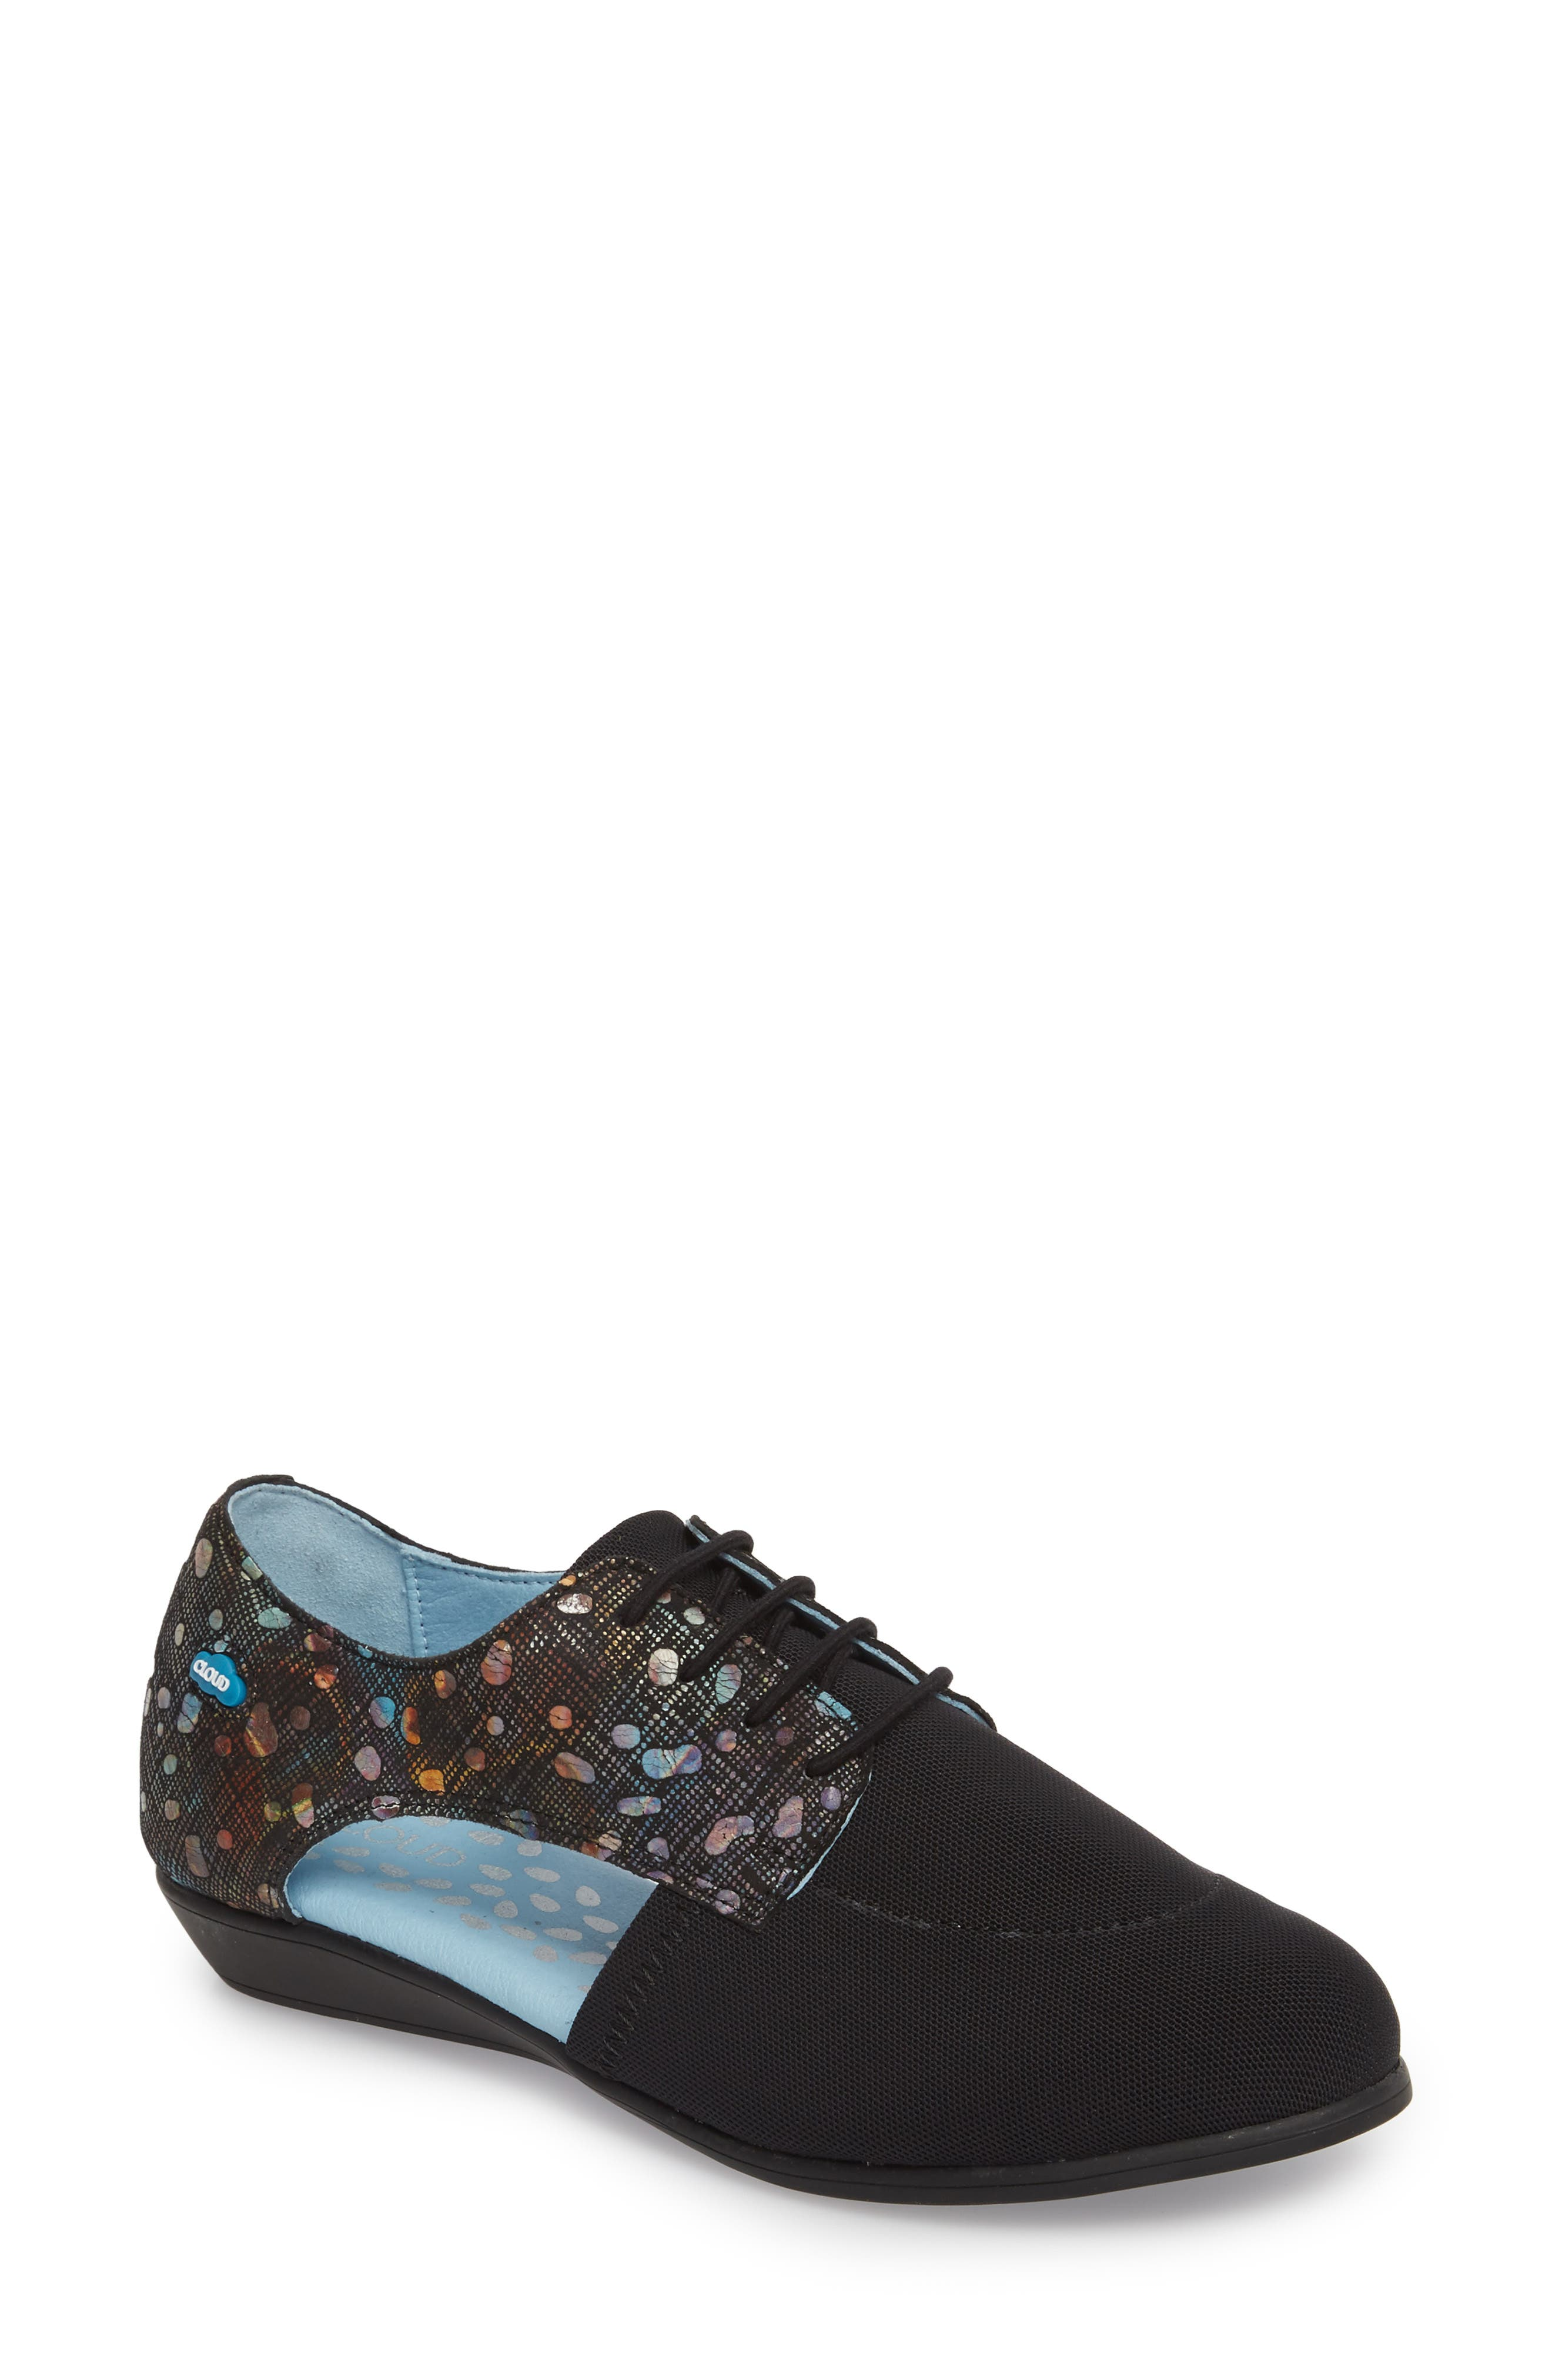 CLOUD Charm Cutout Oxford (Women)